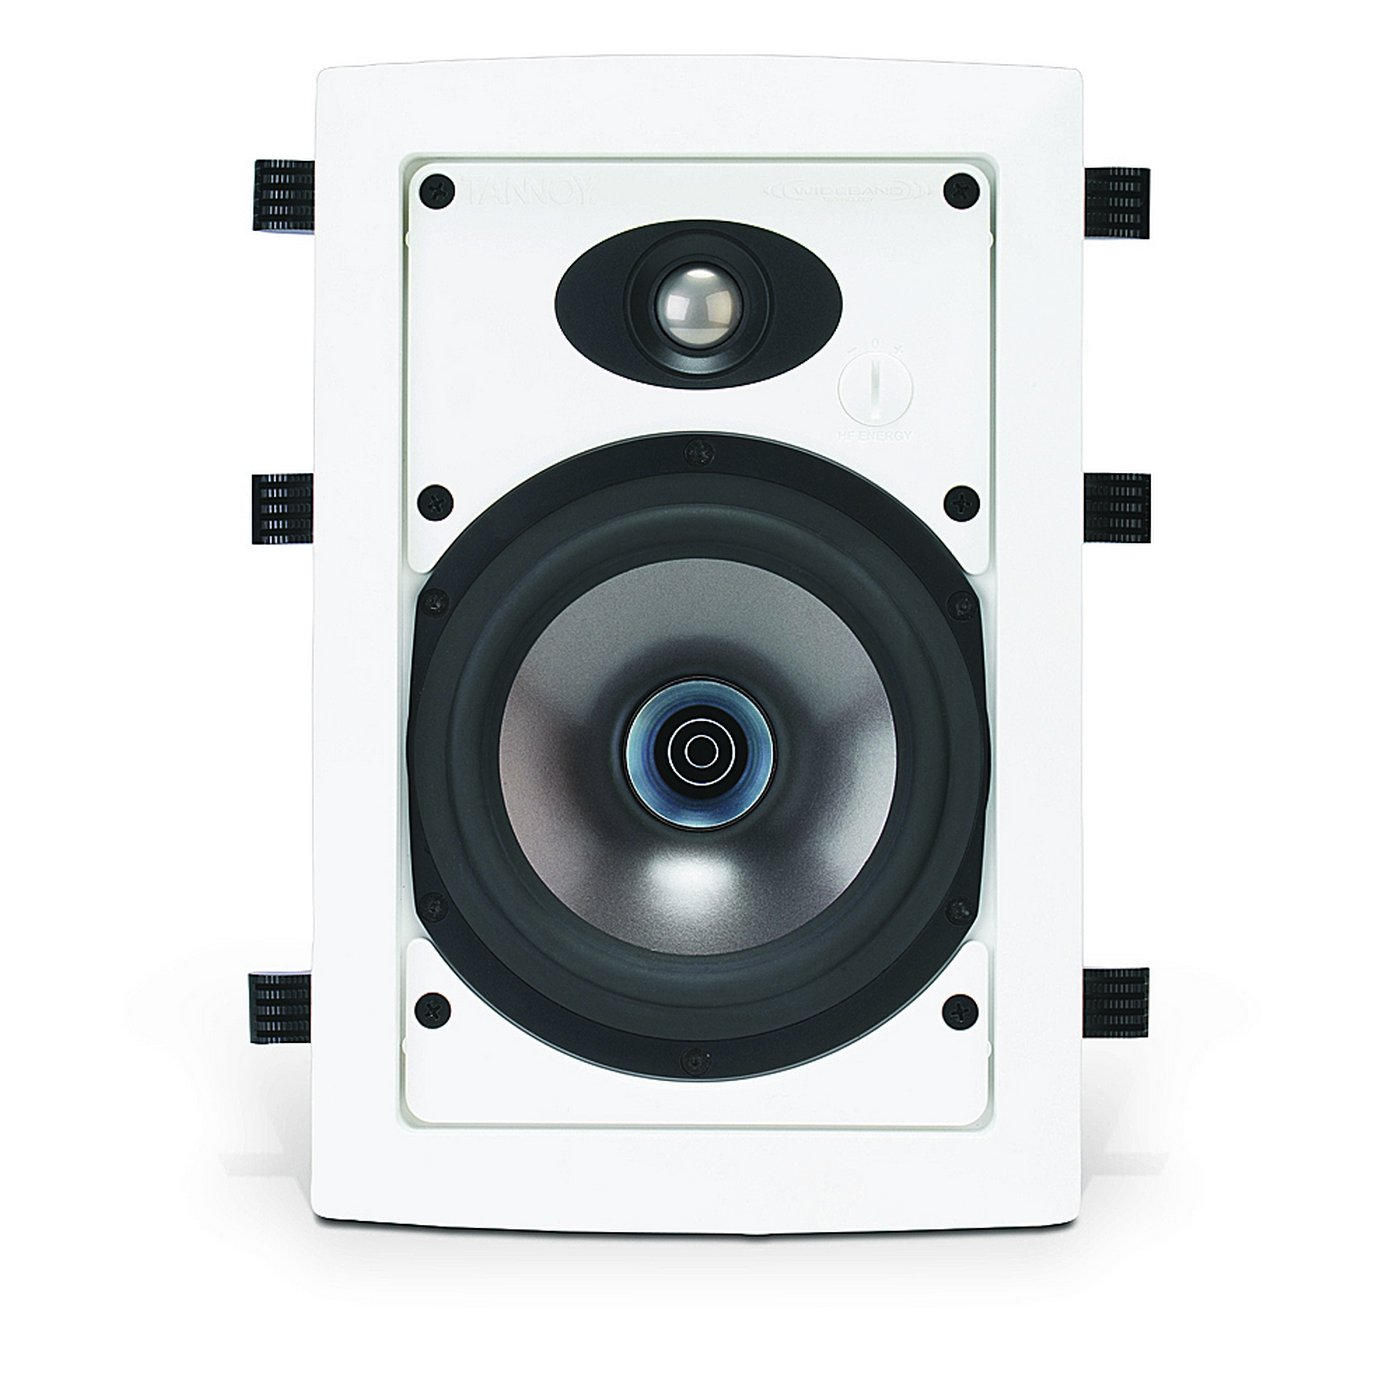 Tannoy iw6 TDC | Dual Concentric Driver High Performance In Wall Loudspeaker